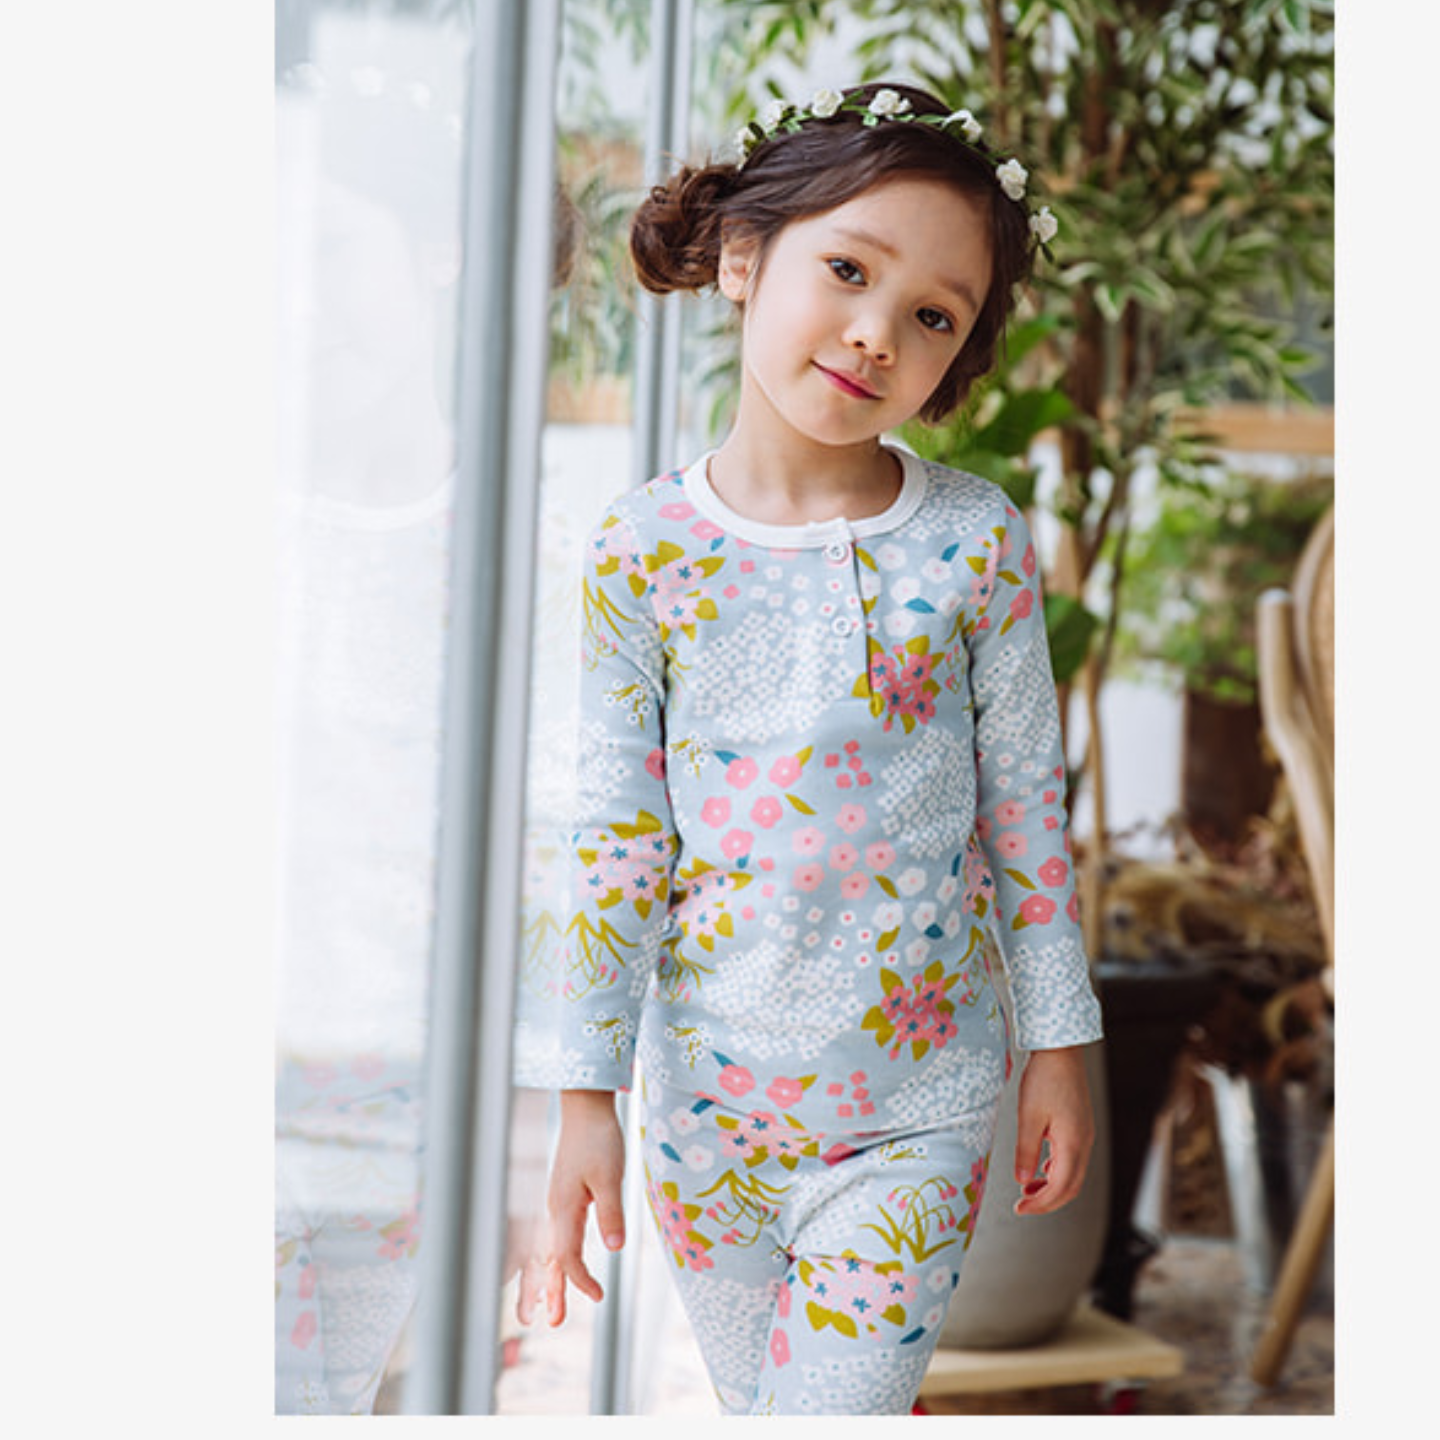 The Flower Fairy Easywear/ PJs